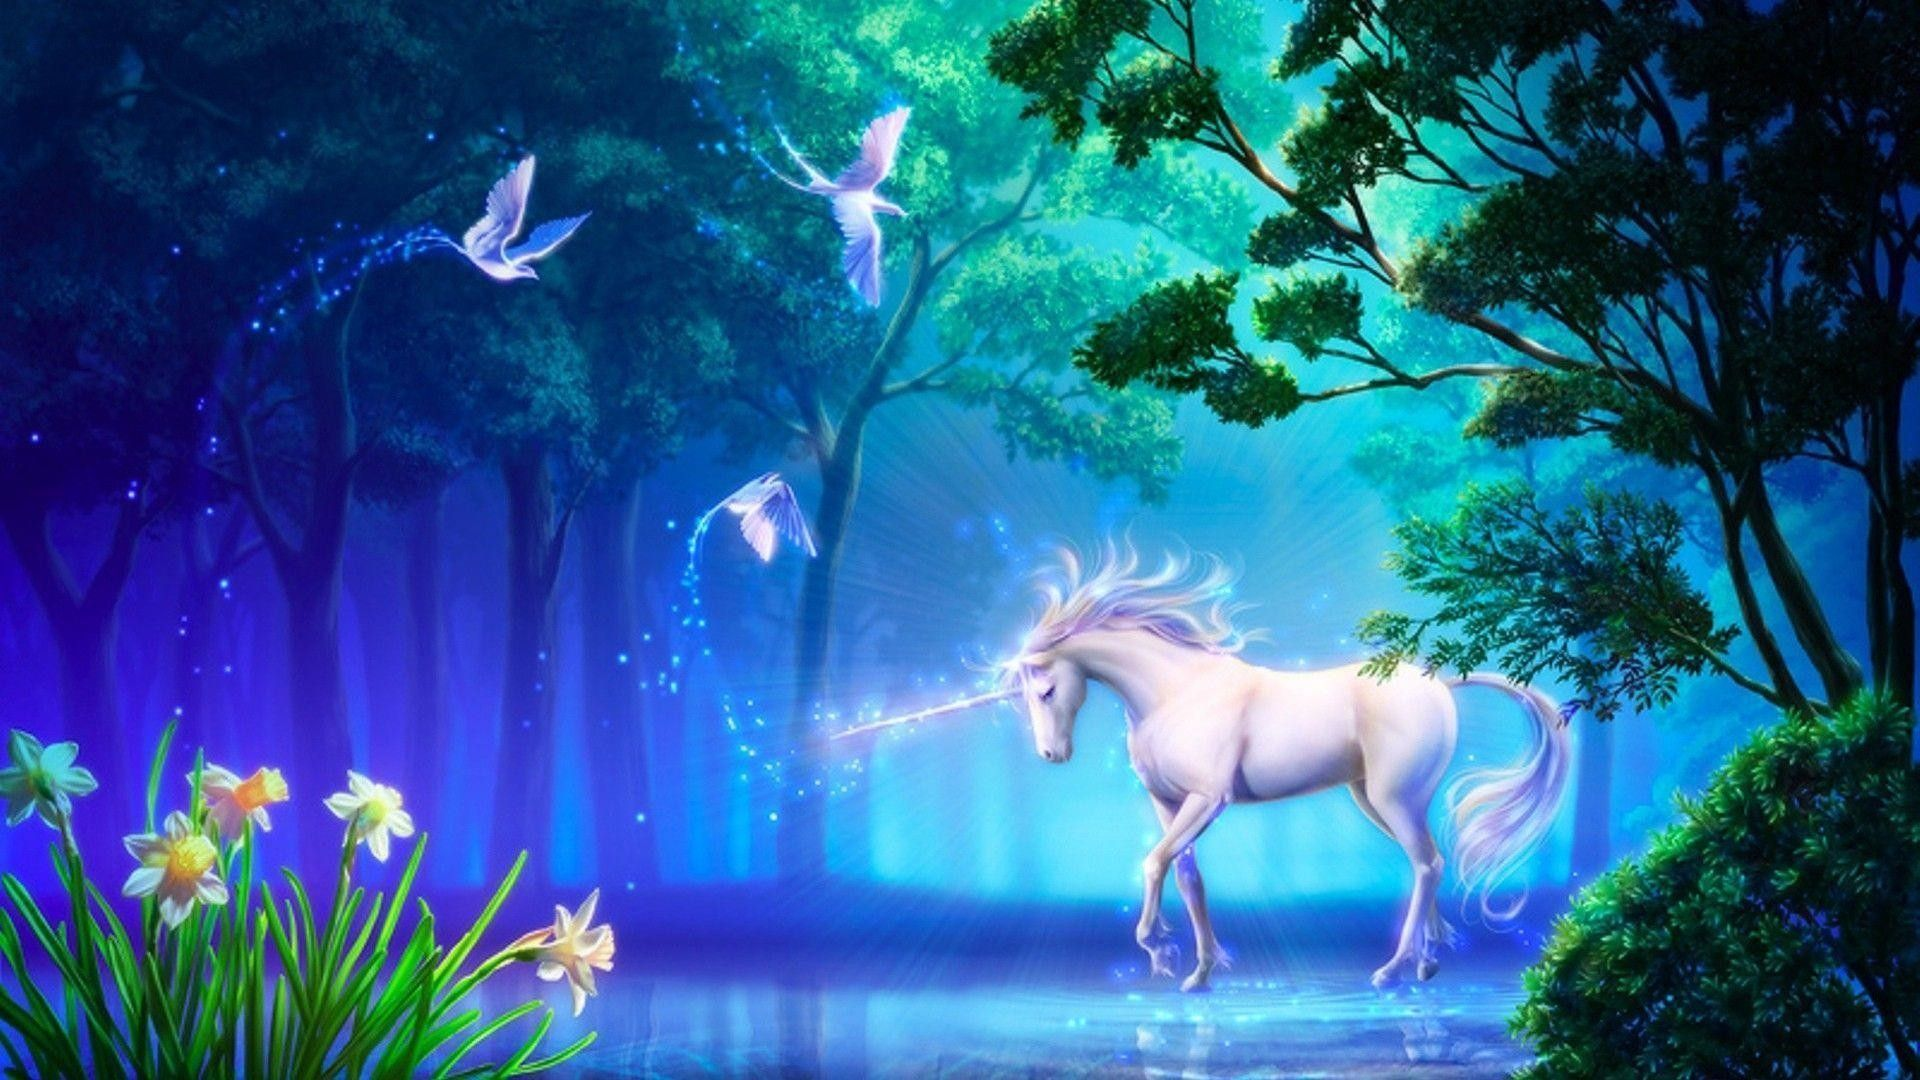 1920x1080 Fantasy Unicorn Wallpaper ·①